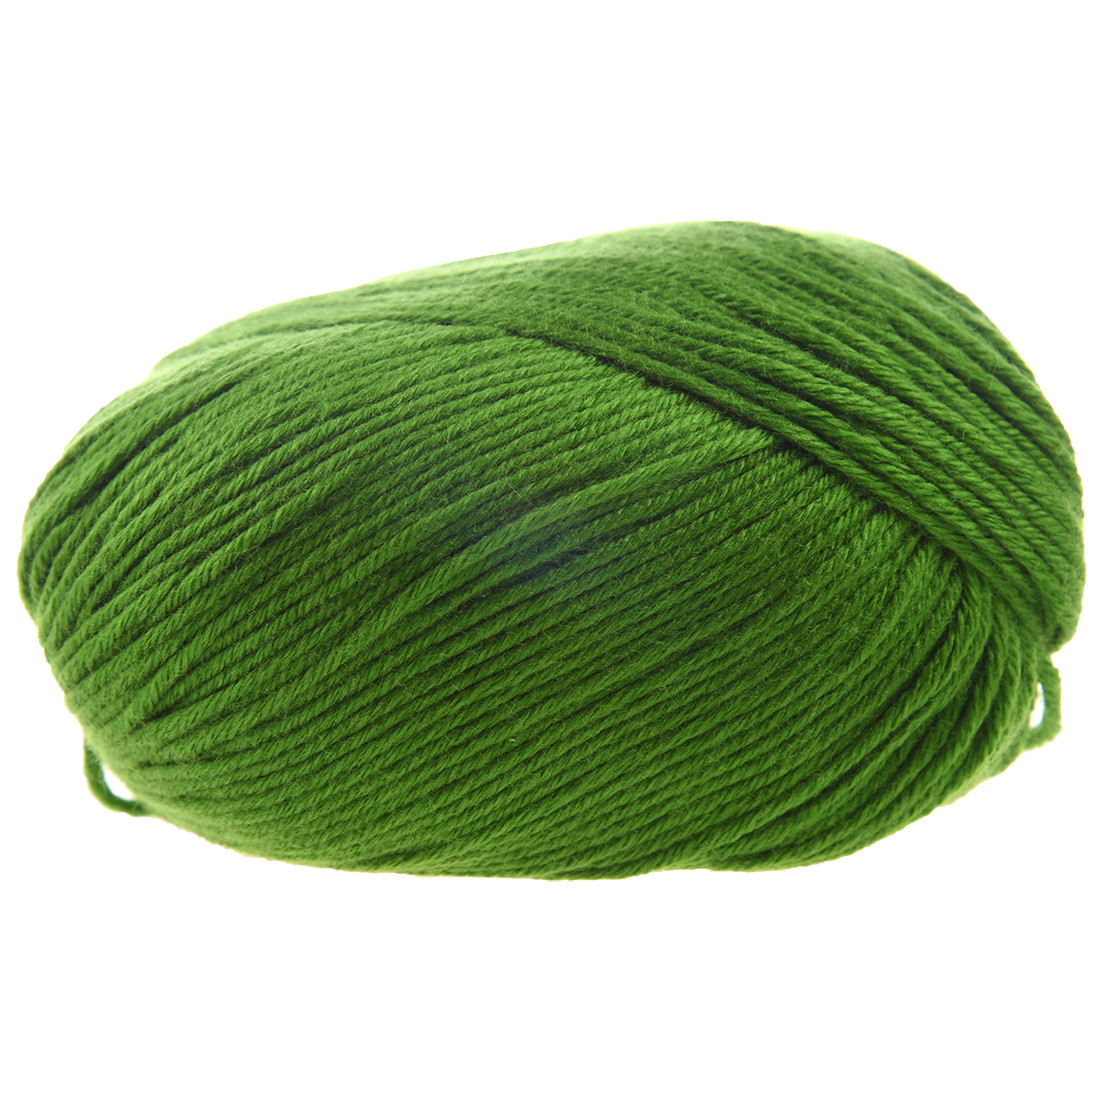 Best Cotton Yarn Awesome 2x 50g Tencel Bamboo Cotton Yarn for Baby Grass Green Ct Of Unique 44 Ideas Best Cotton Yarn